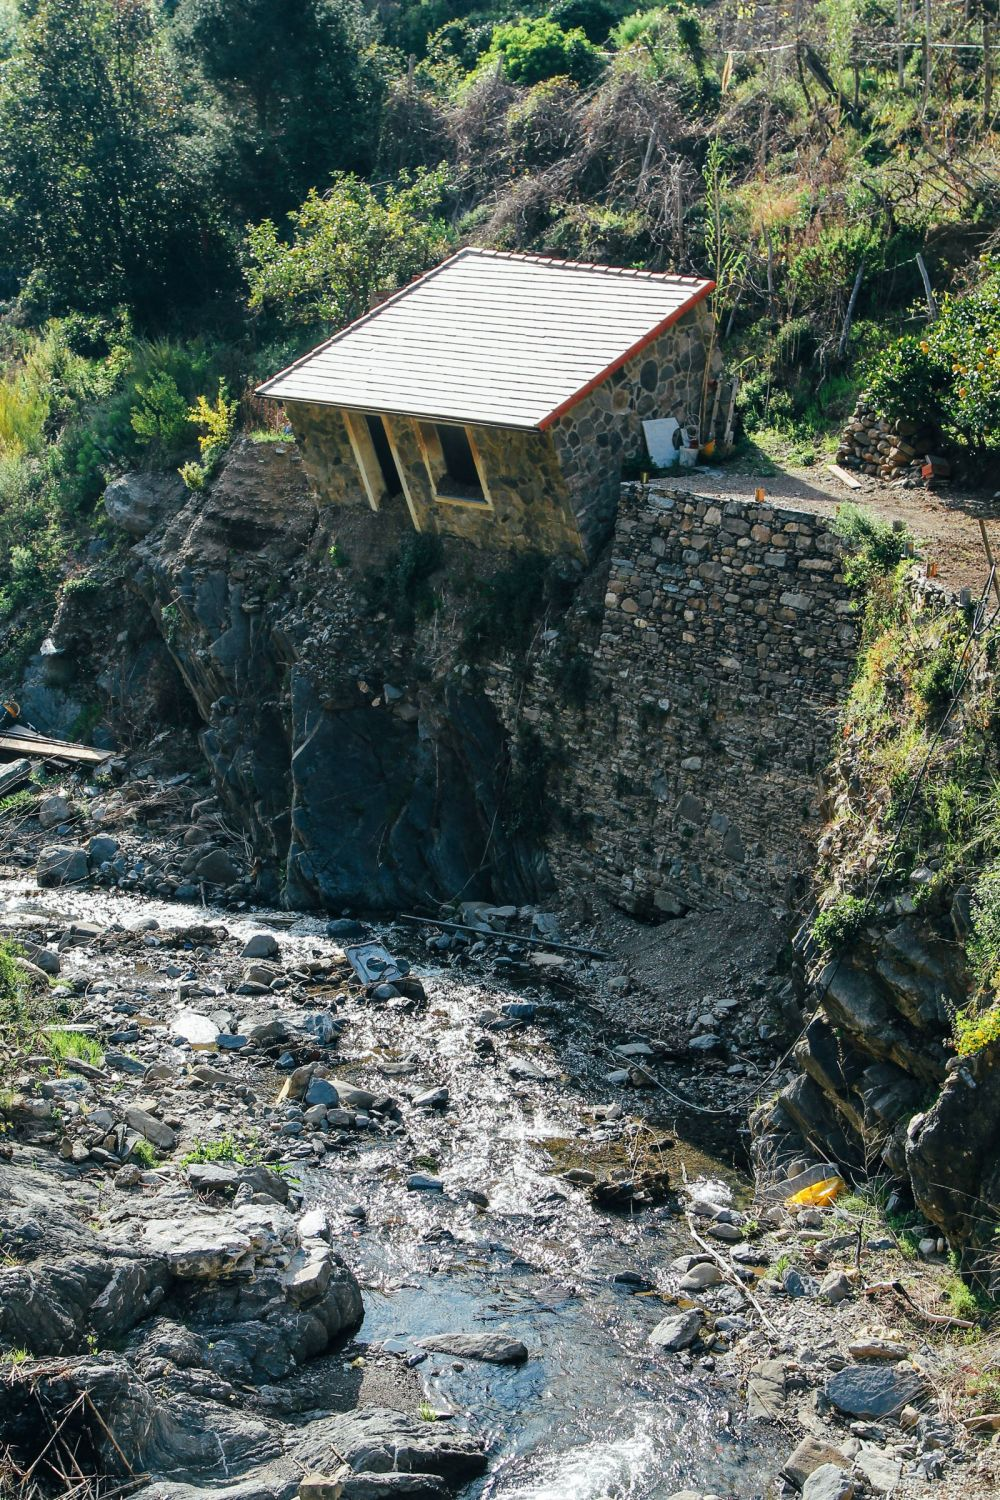 Vernazza in Cinque Terre, Italy - The Photo Diary! [4 of 5] (34)